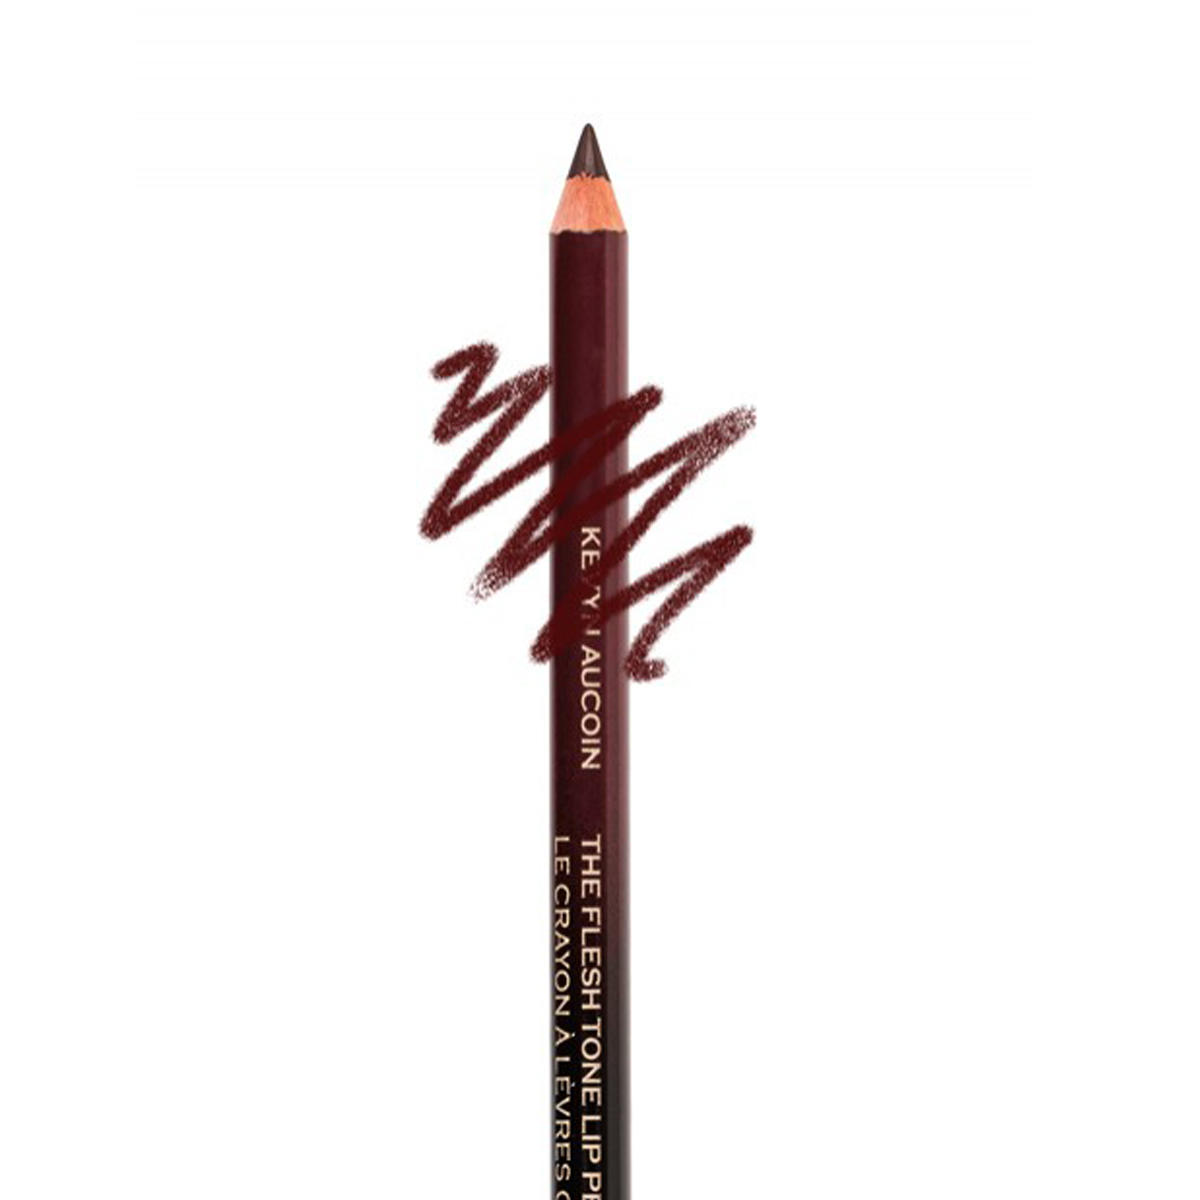 Kevyn Aucoin The Flesh Tone Lip Pencil Bloodroses